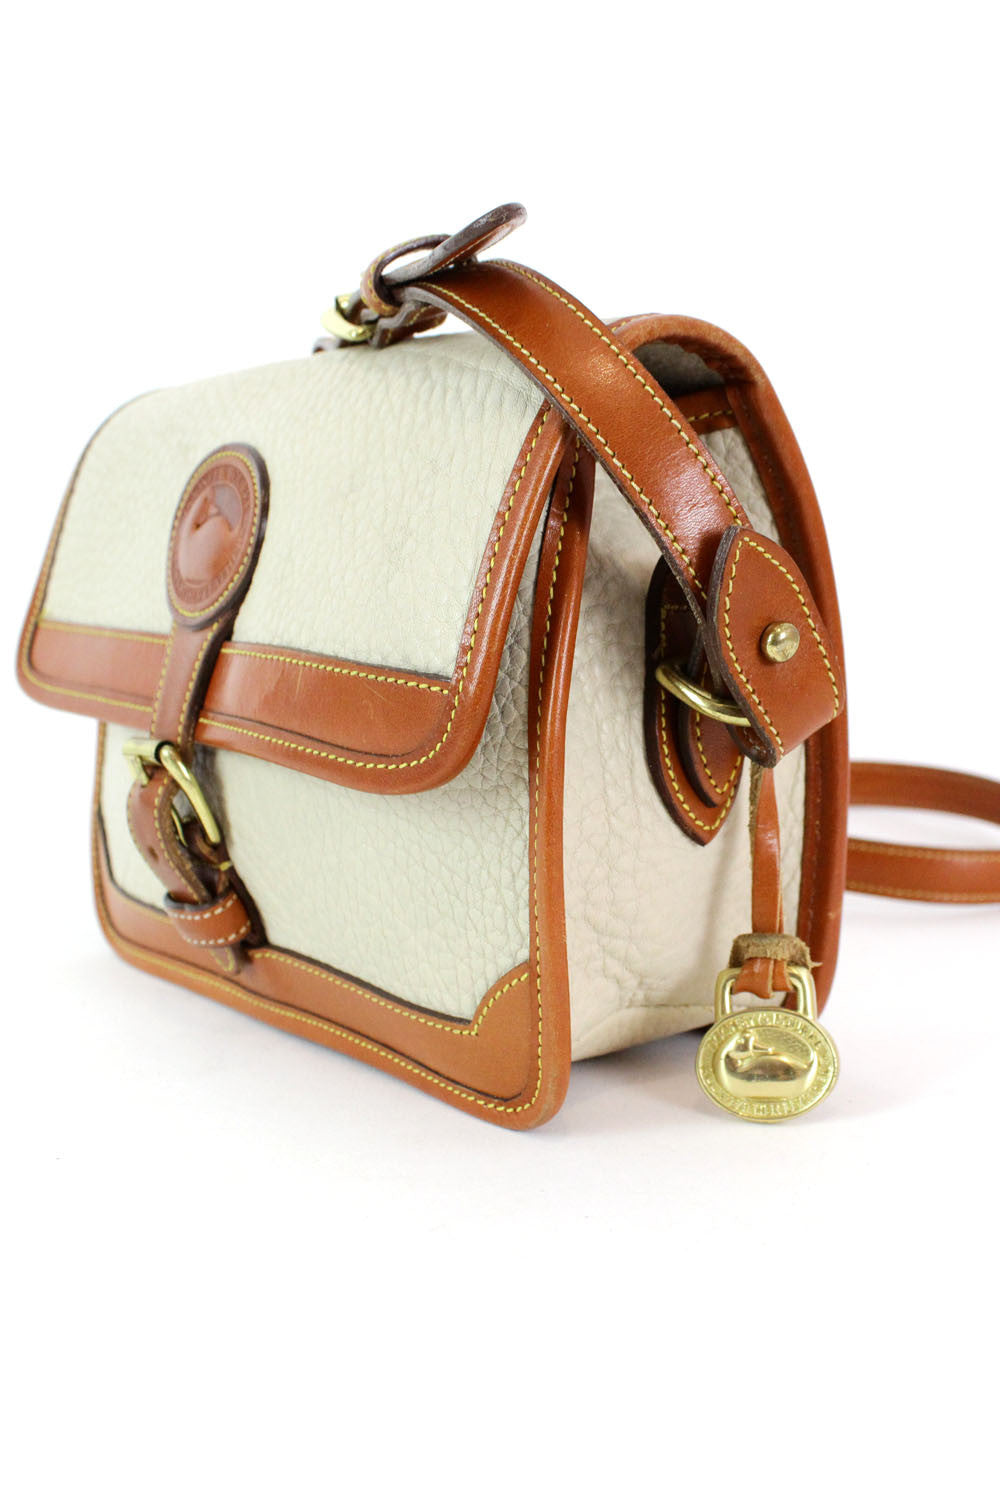 Dooney & Bourke Two Tone Crossbody Bag